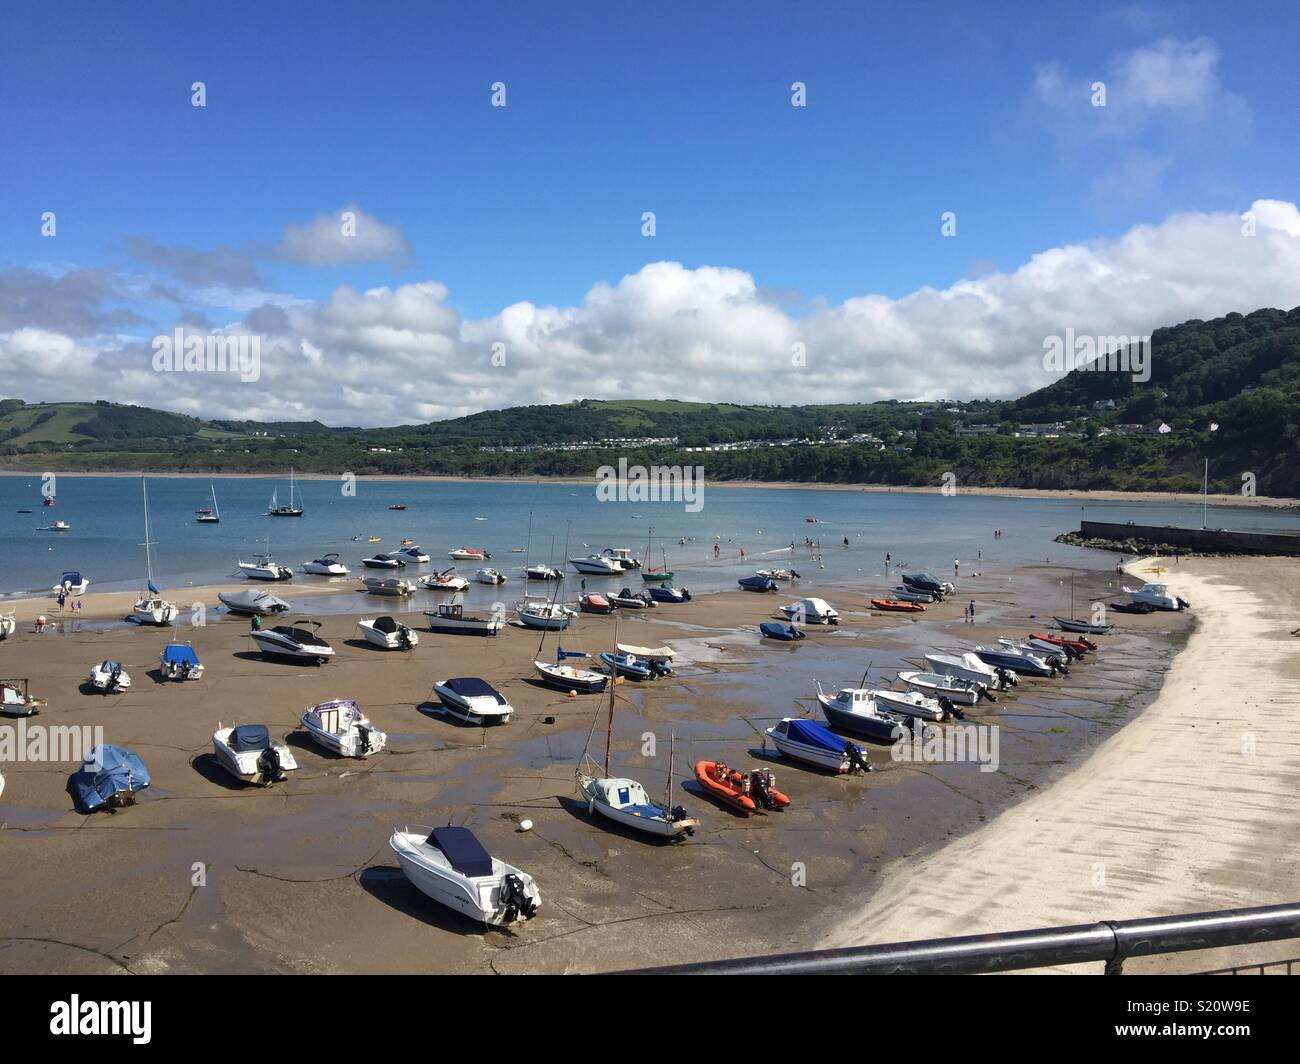 New quay wales - Stock Image